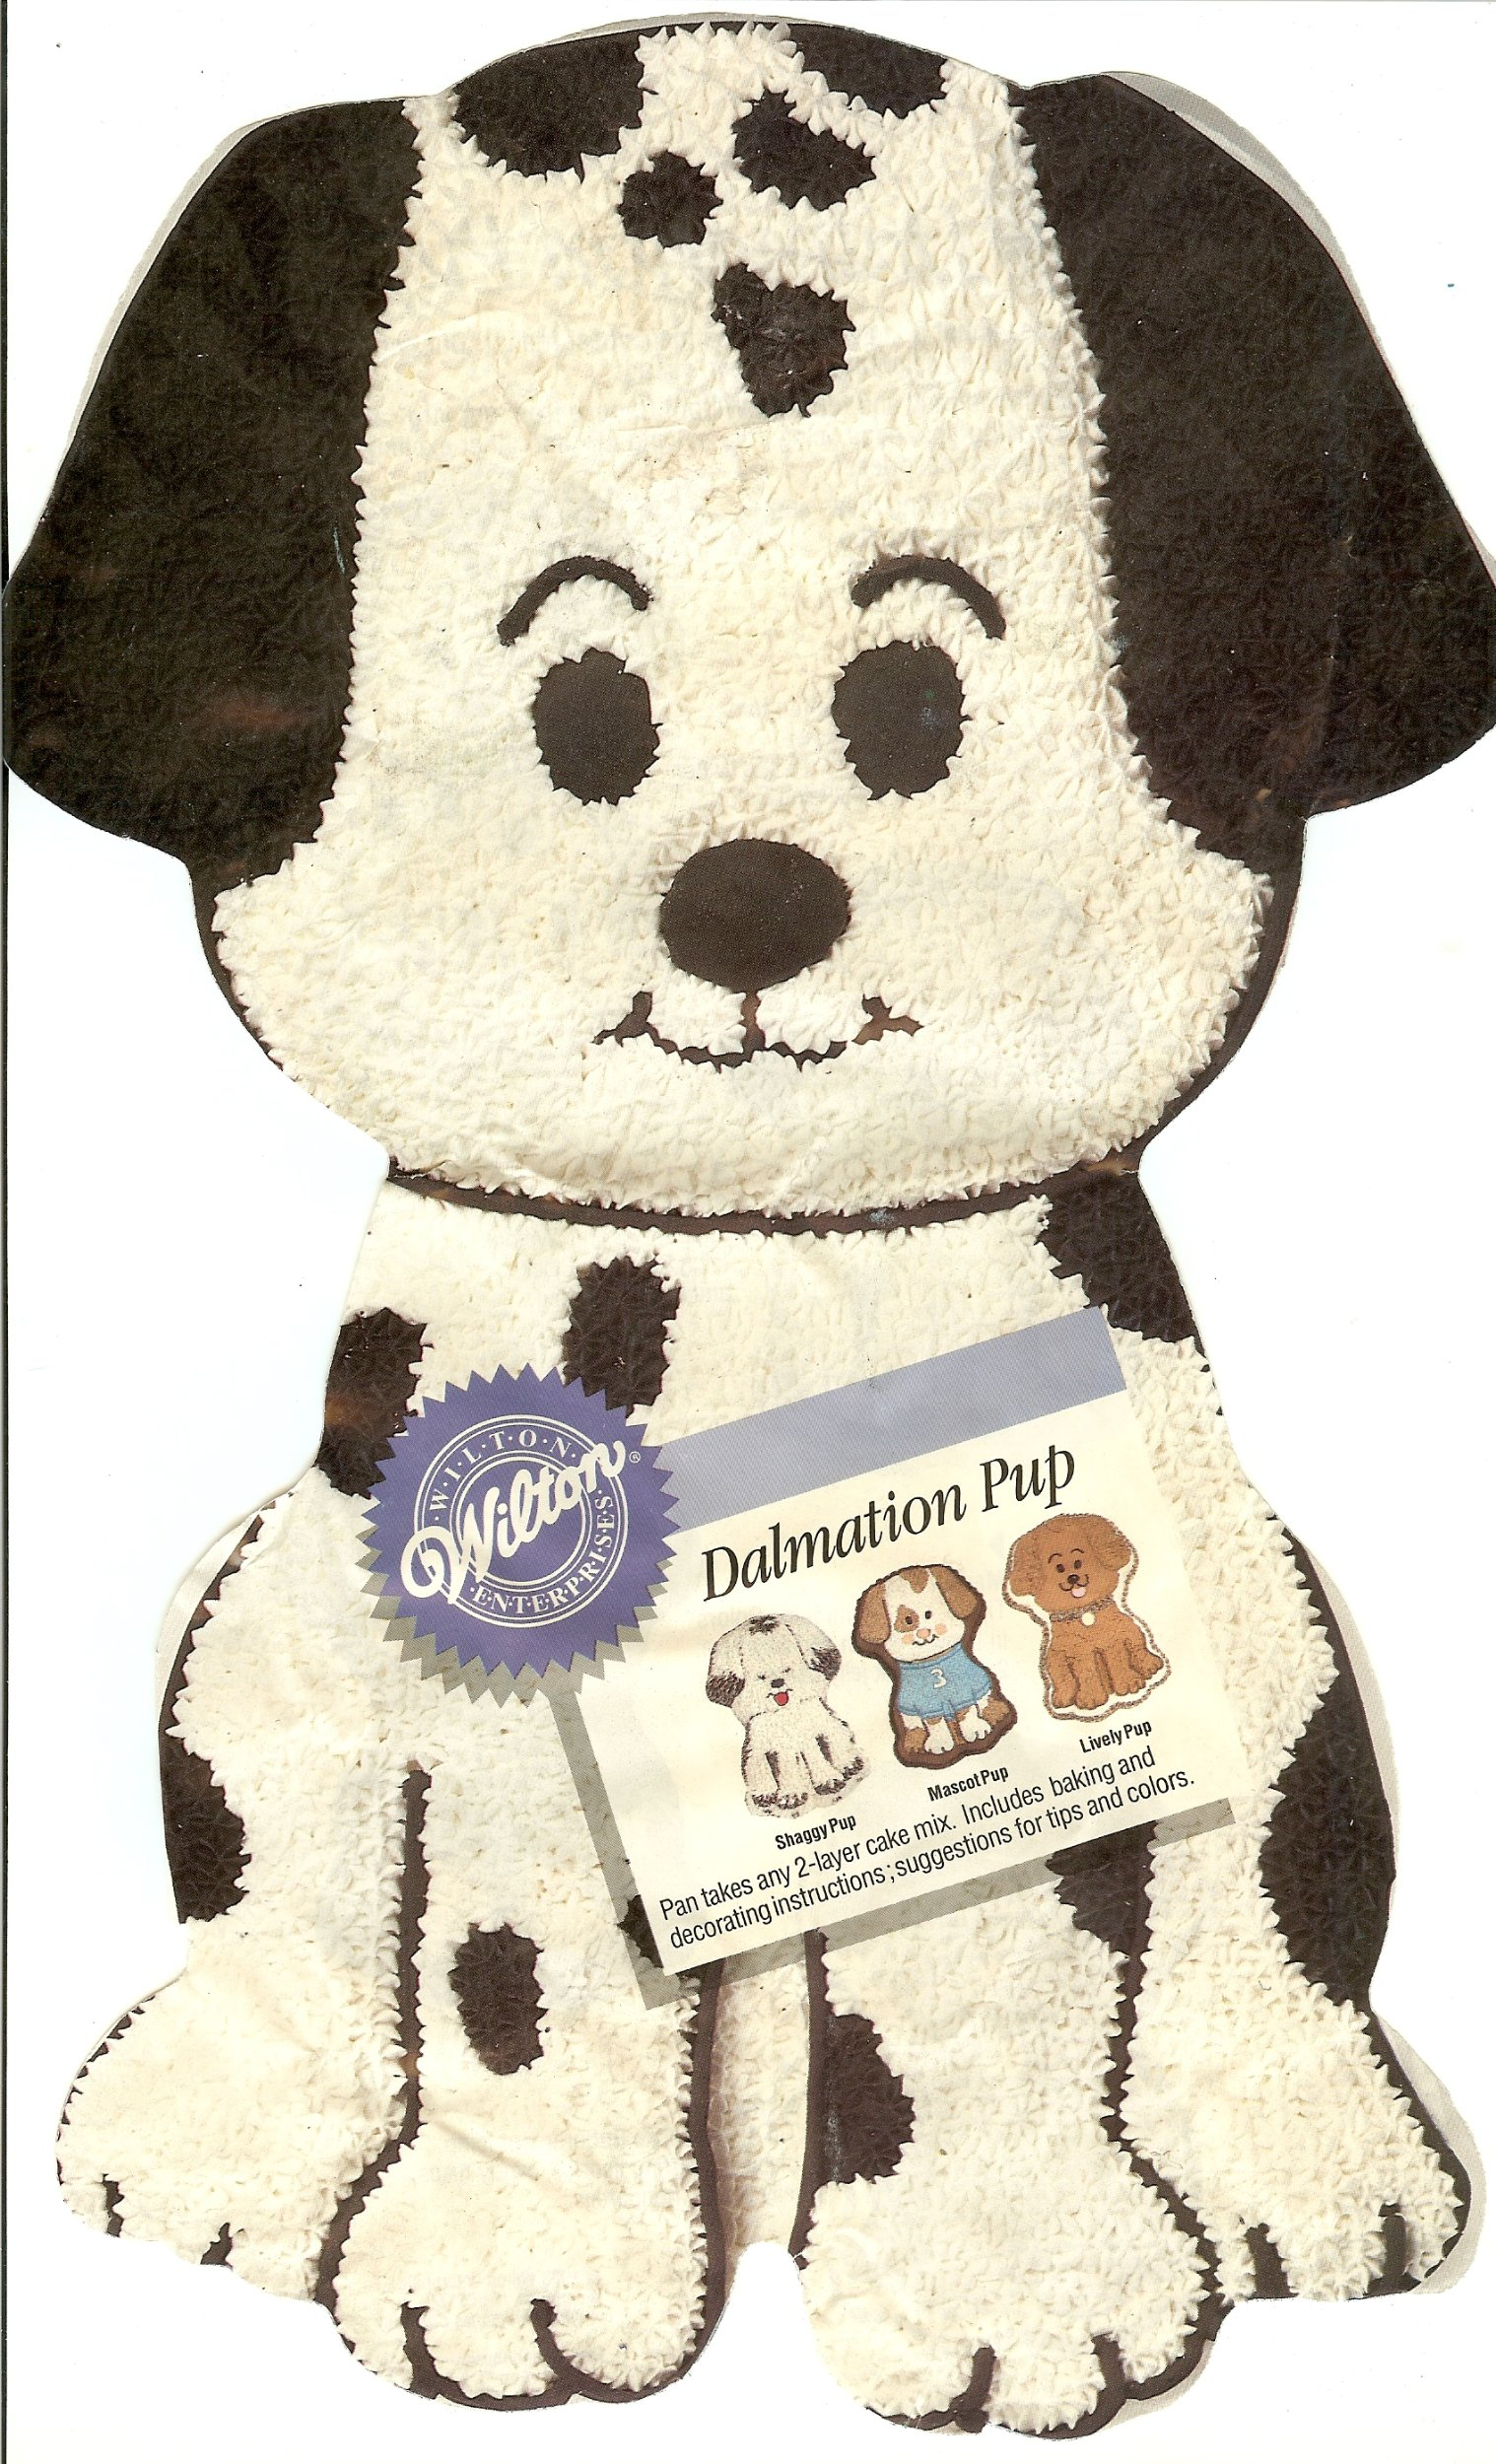 Wilton Dalmation Pup Puppy Dog Cake Pan (2105-9334, 1993)